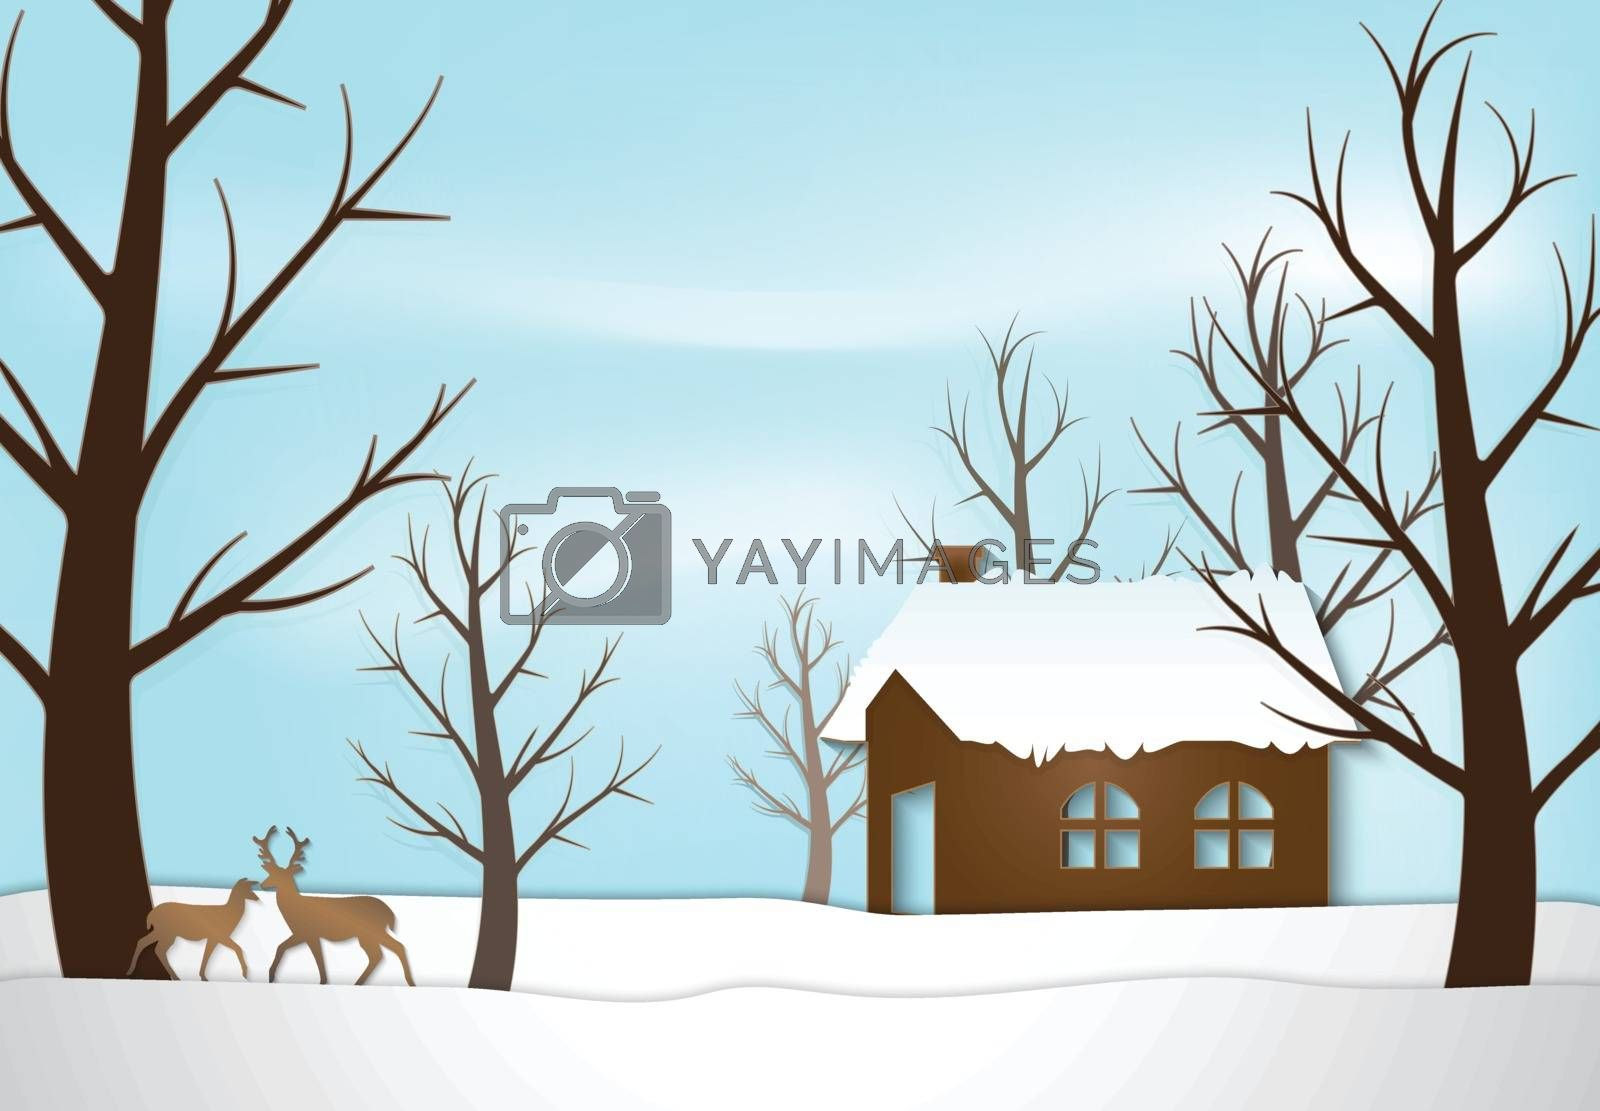 Cottage and deer Christmas season background paper art style illustration.